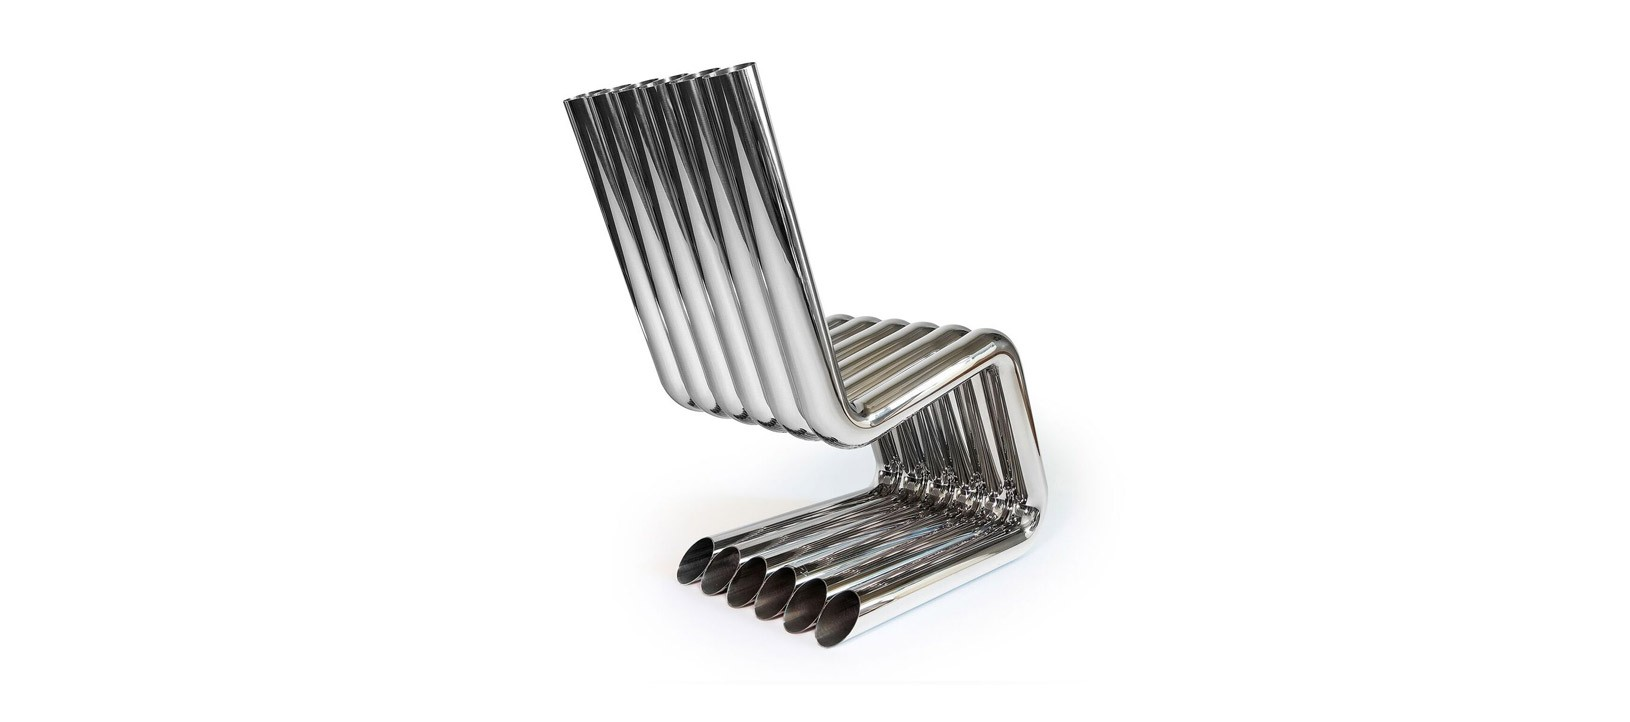 XOSTED - automotive inspired silver Chair